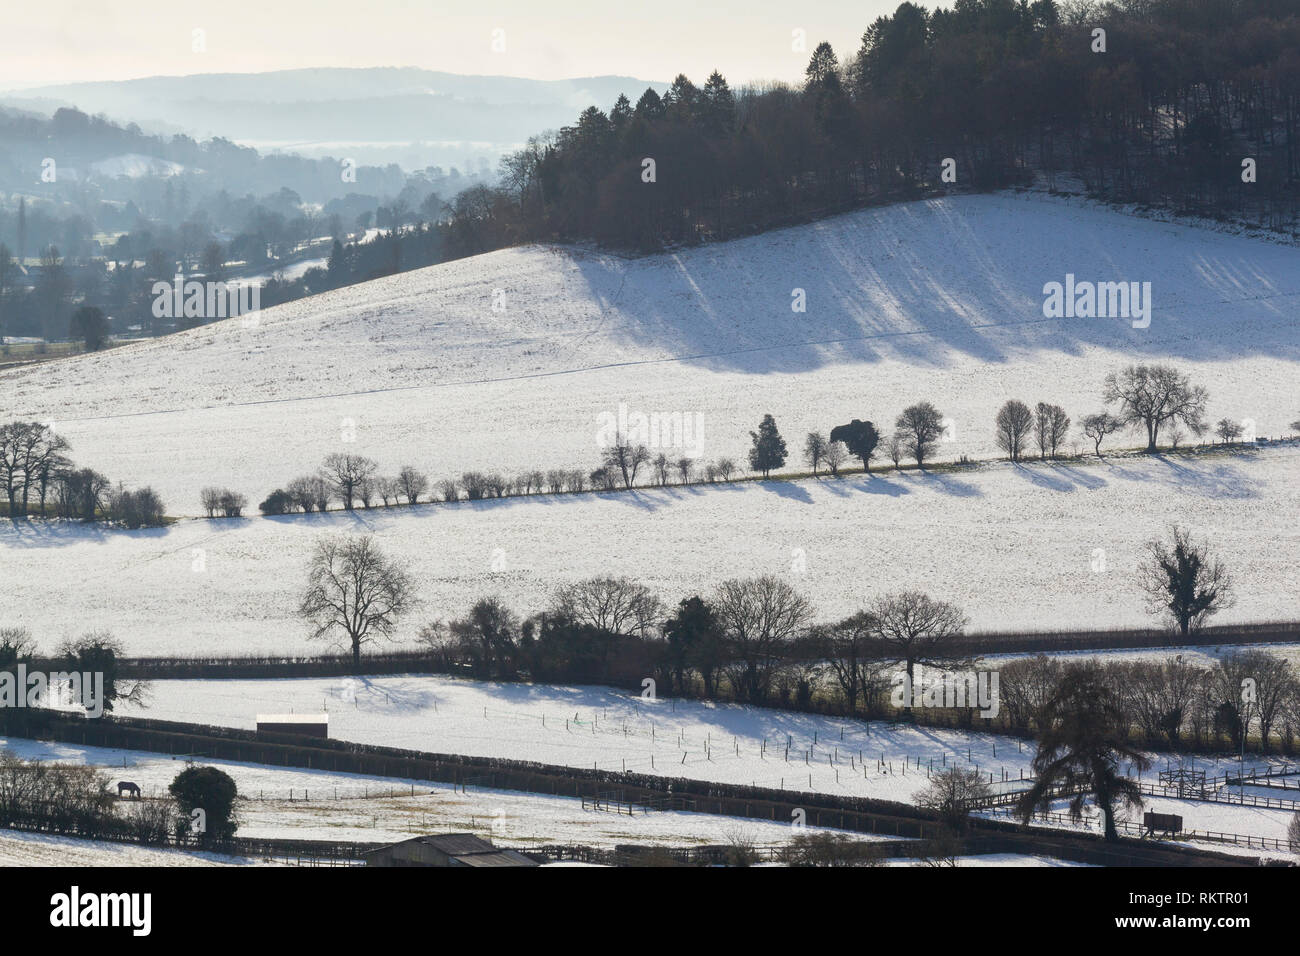 Winter view of the Hableden Valley with snow on the ground. - Stock Image